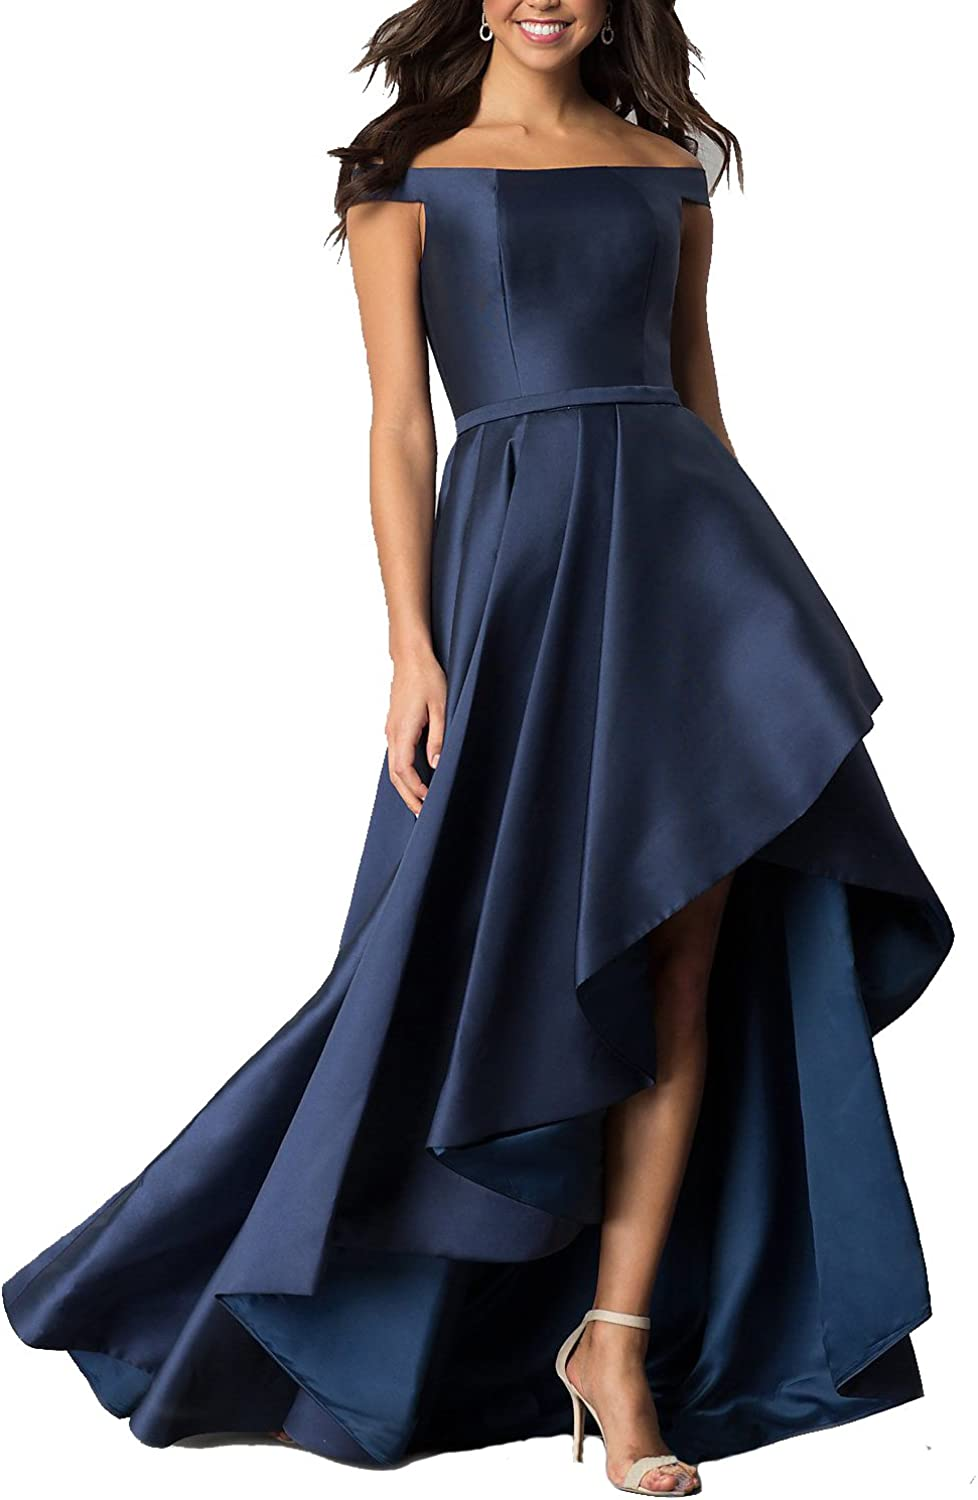 Sulidi Women's Off Shoulder HiLo Prom Homecoming Dresses Long Satin Evening Party Gown C044